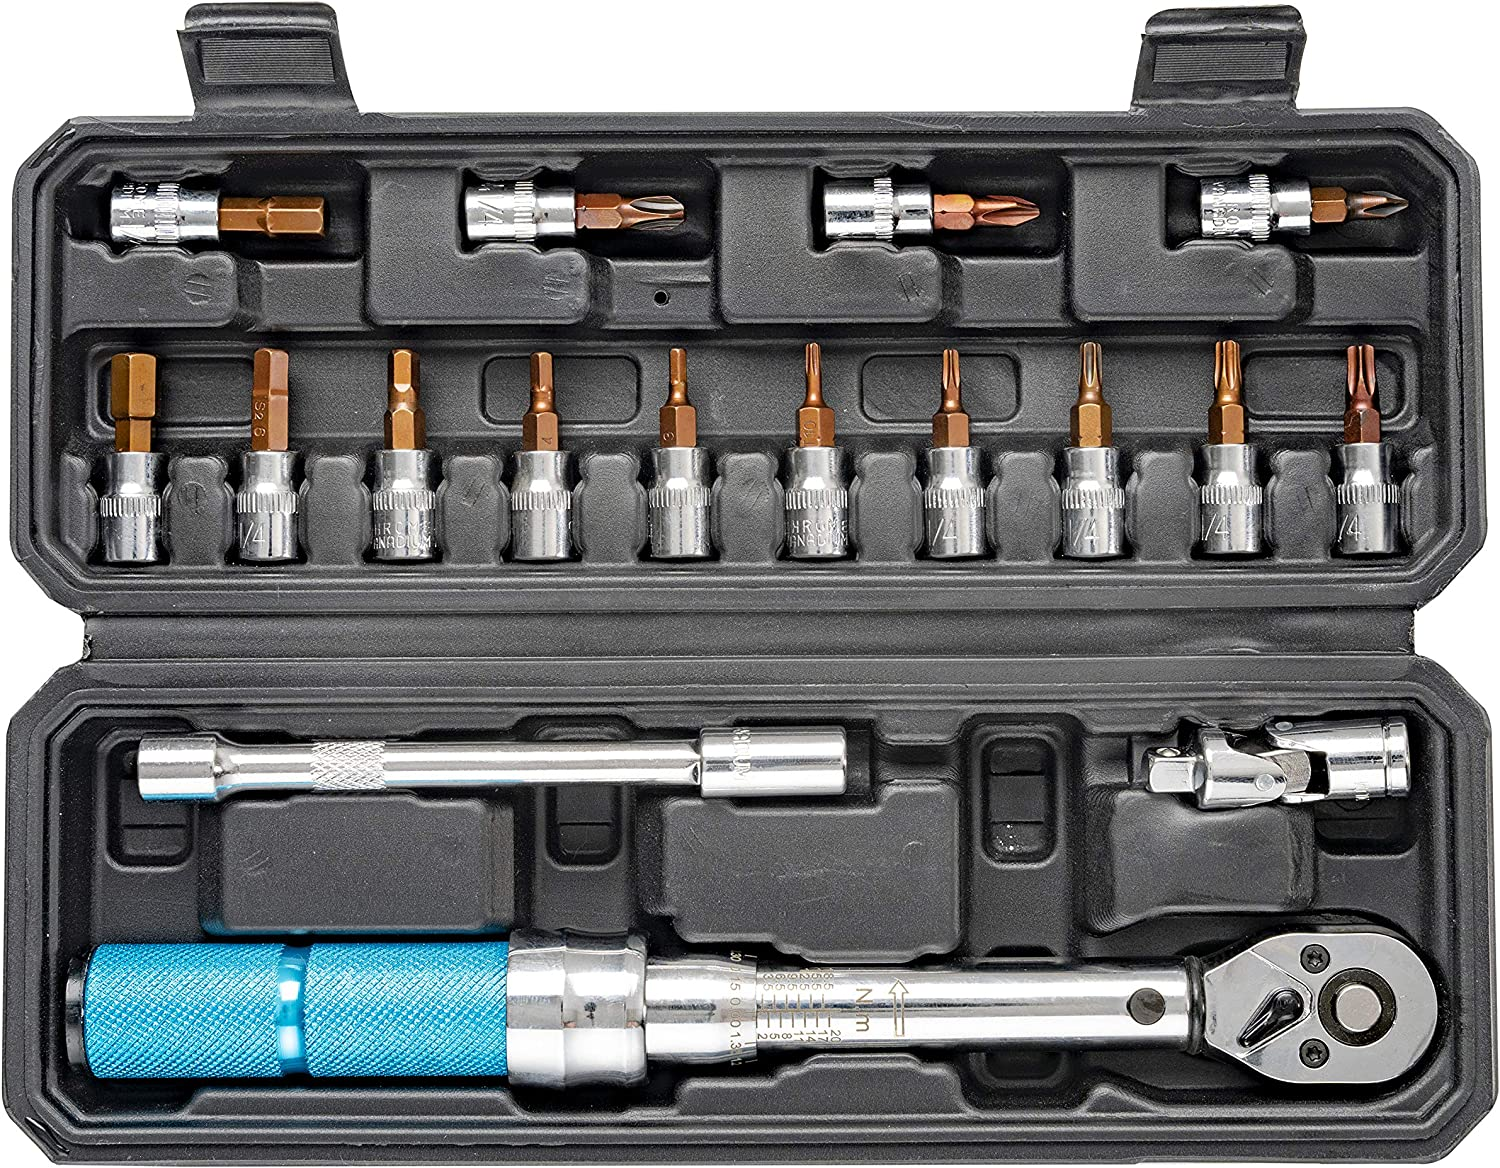 18 Piece 1//4-inch Drive Click Torque Wrench Set Dual-Direction Adjustable 72-tooth Torque Wrench with Buckle 2-20 N.m.